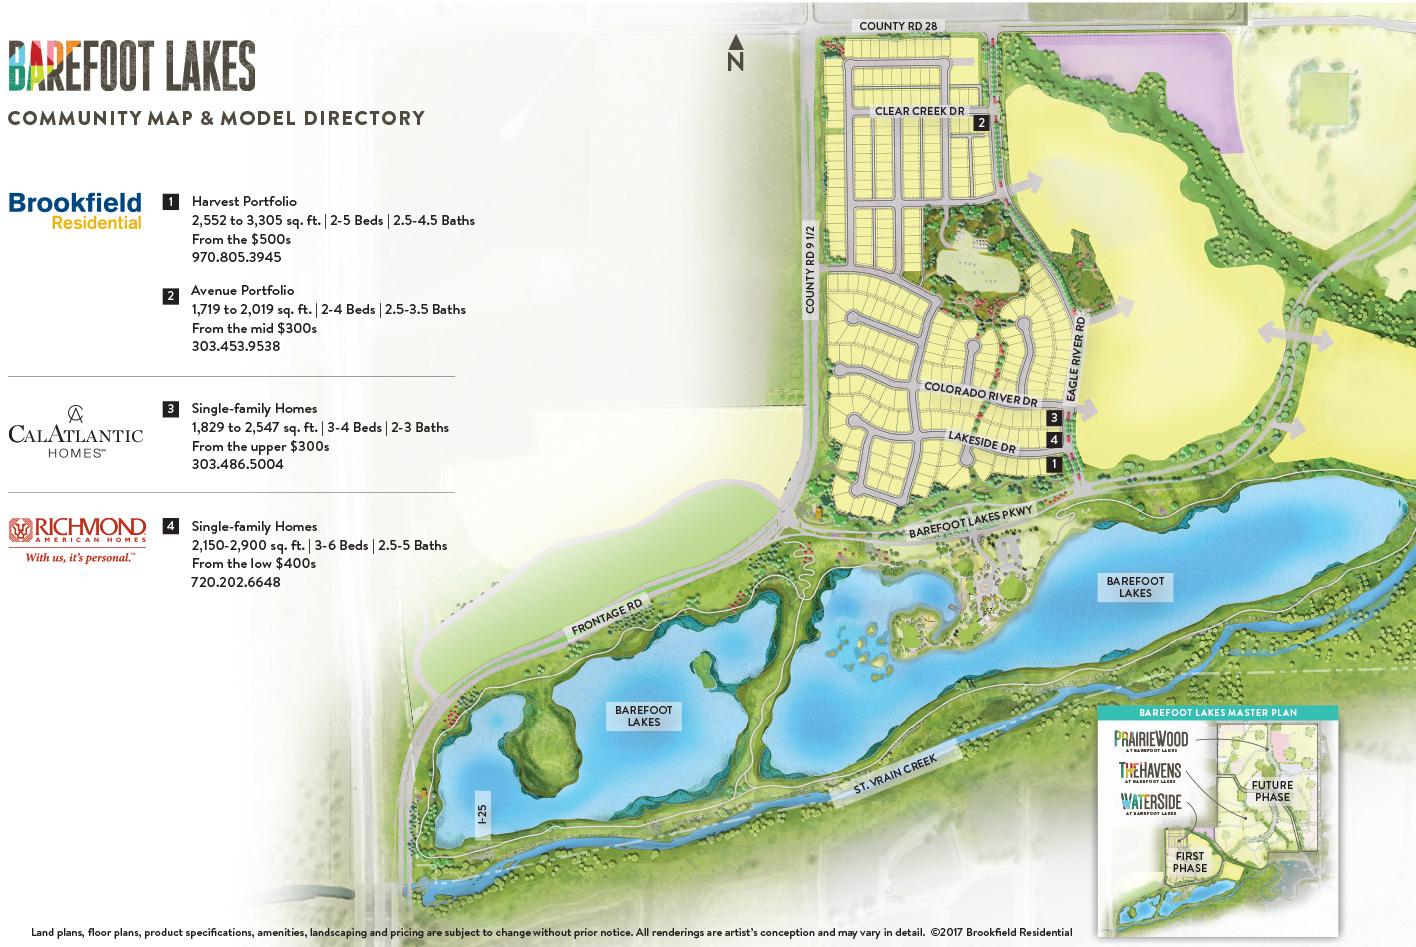 Barefoot Lakes - Waterside Neighborhood